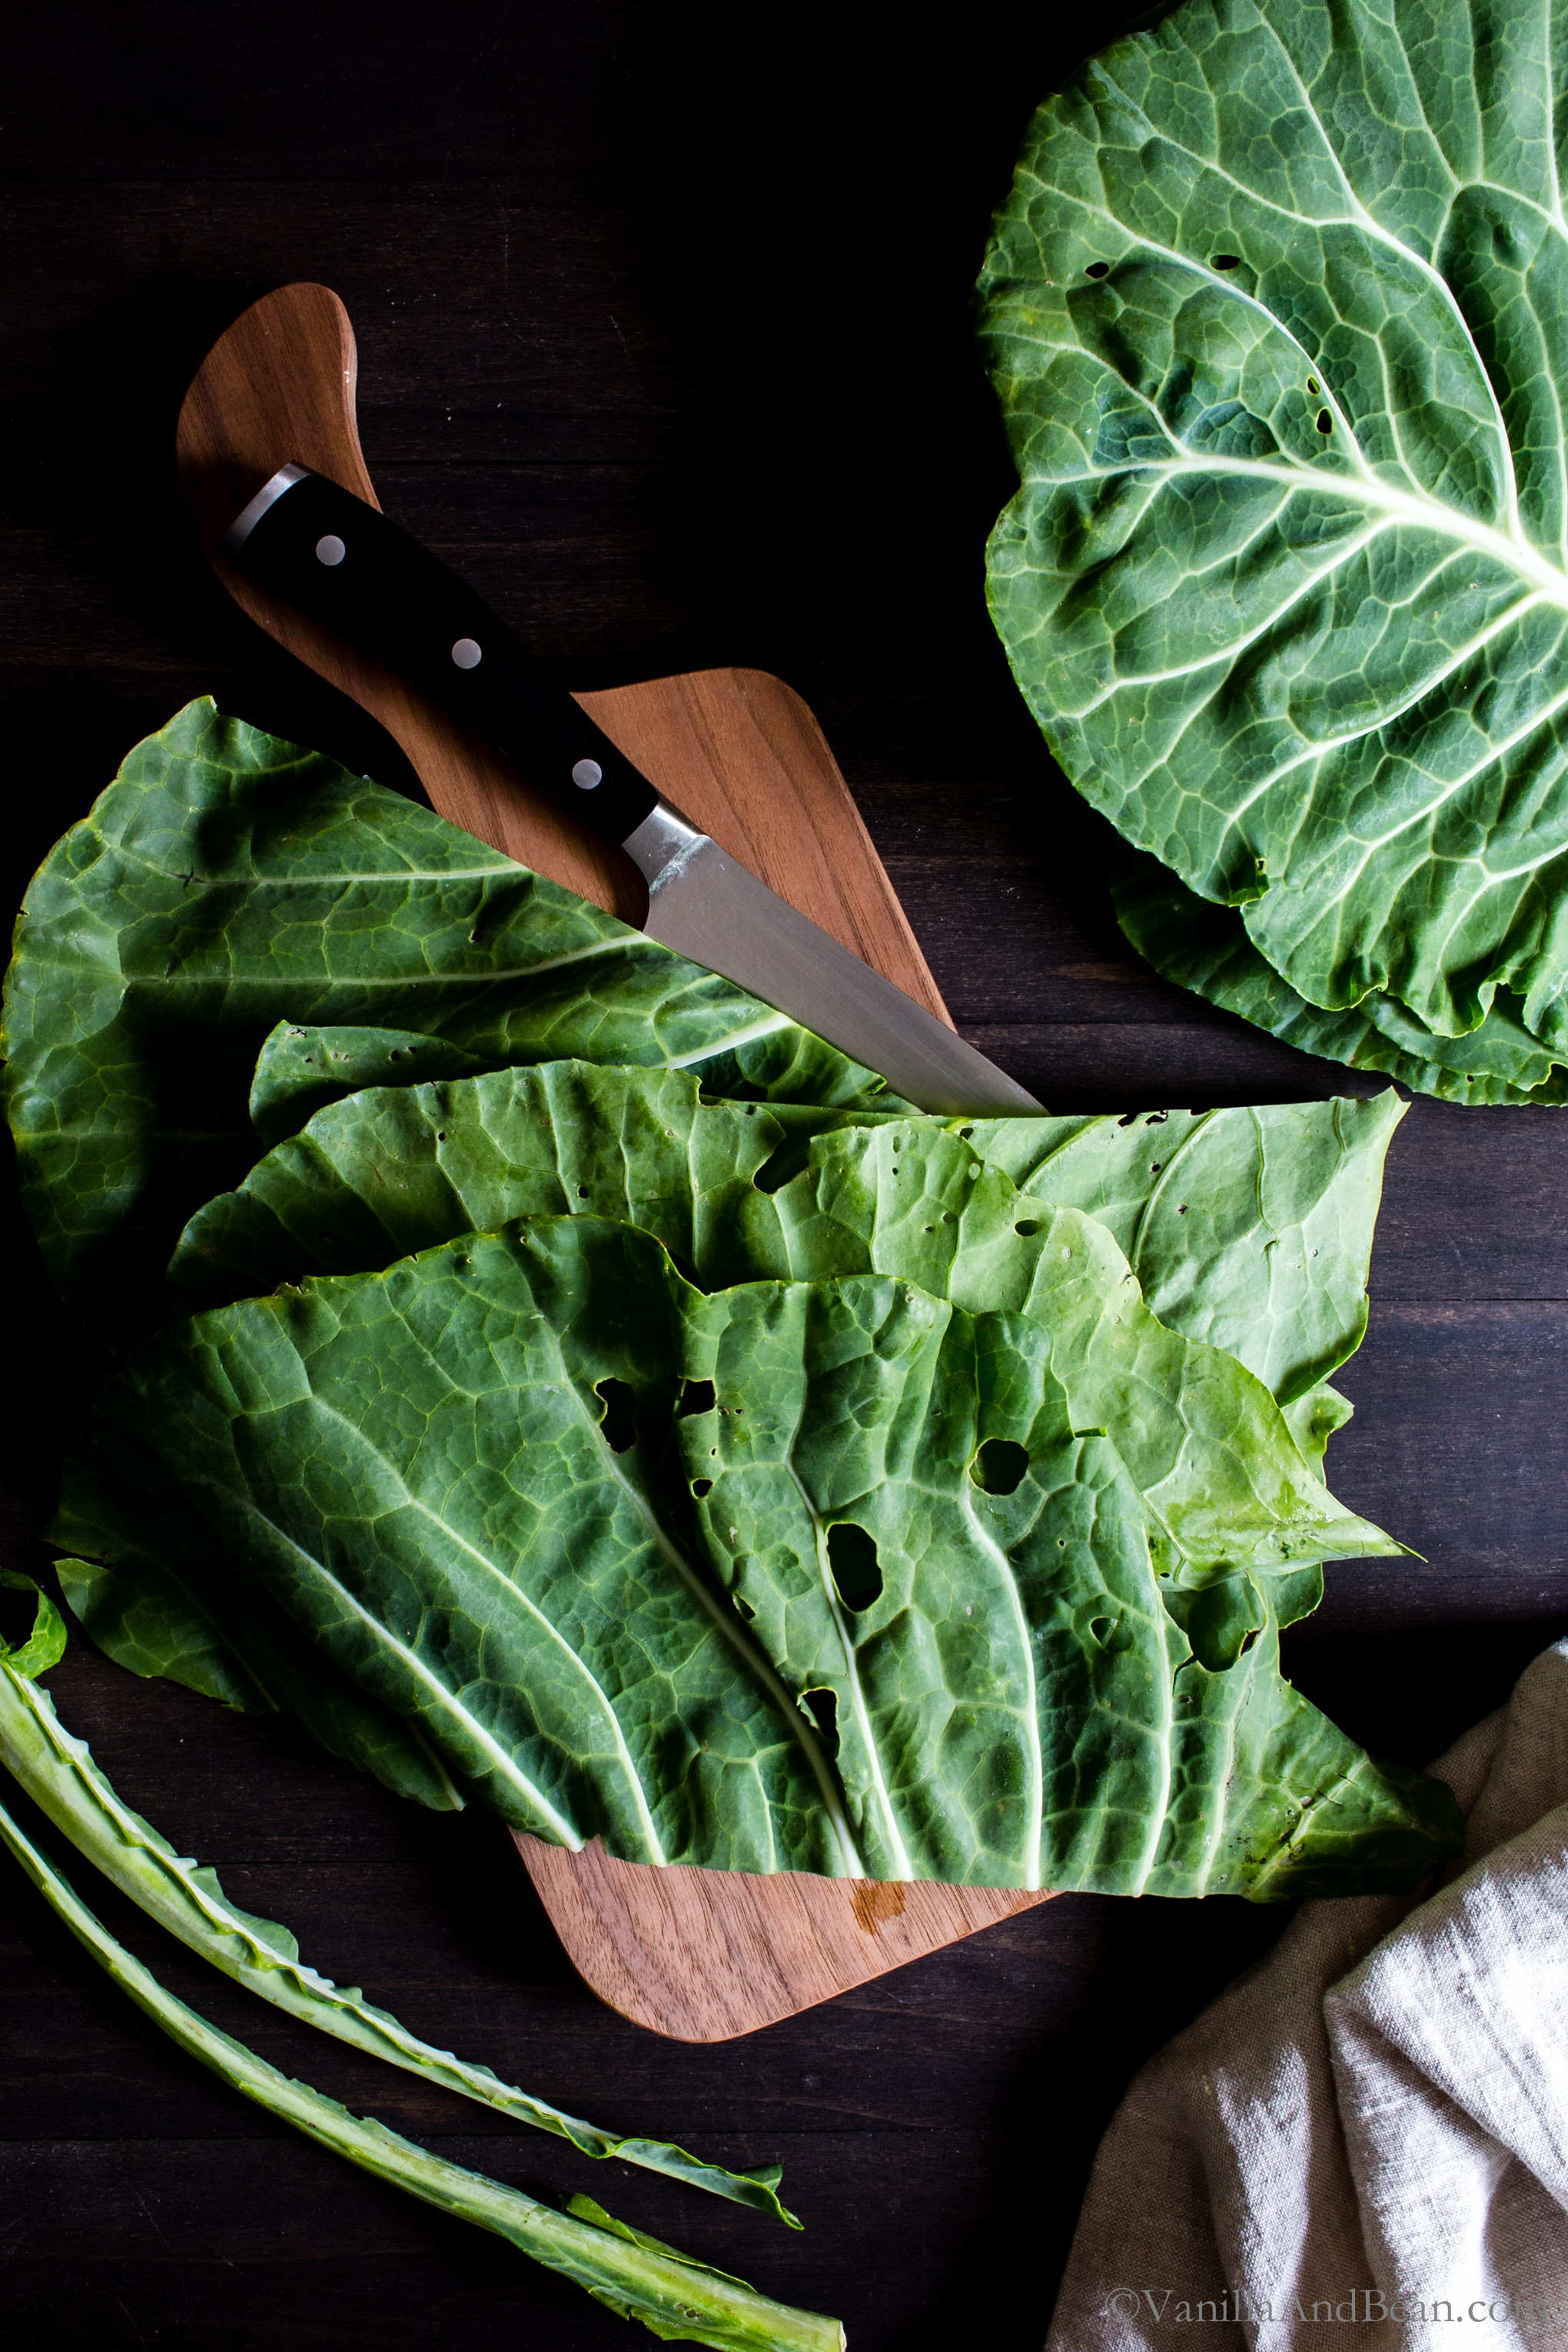 Chopping collard greens on a cutting board.